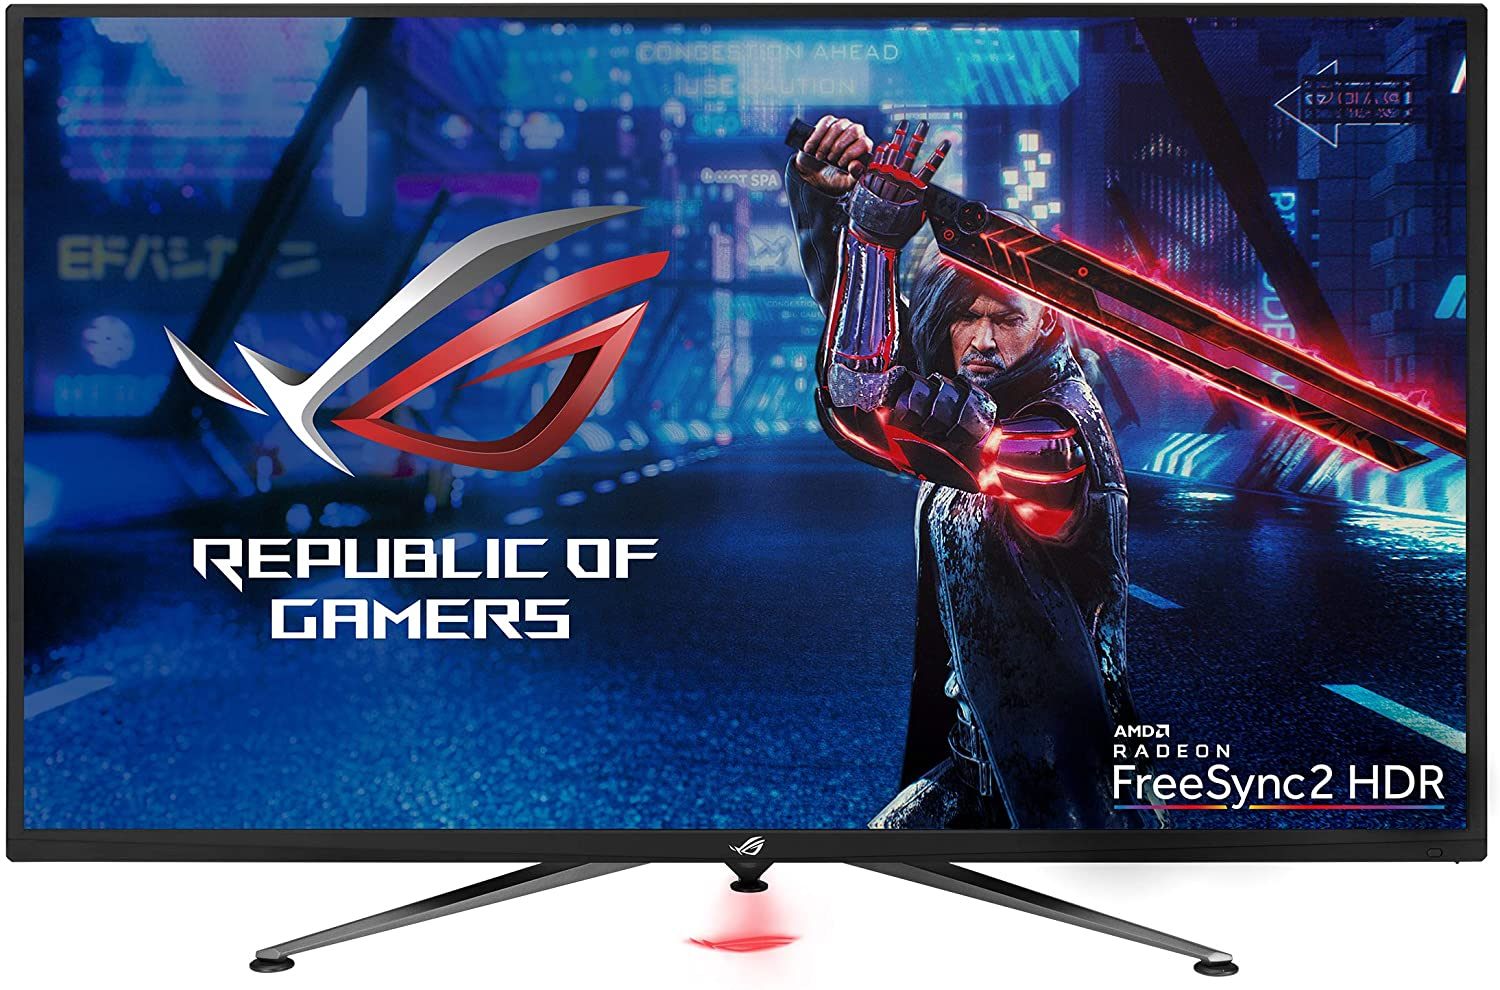 "Asus ROG Strix XG438Q 43"" Large Gaming Monitor with 4K 120Hz FreeSync 2 HDR Displayhdr 600 90% DCI-P3 Aura Sync 10W Speaker Non-Glare Eye Care with HDMI 2.0 DP 1.4 Remote Control,Black"